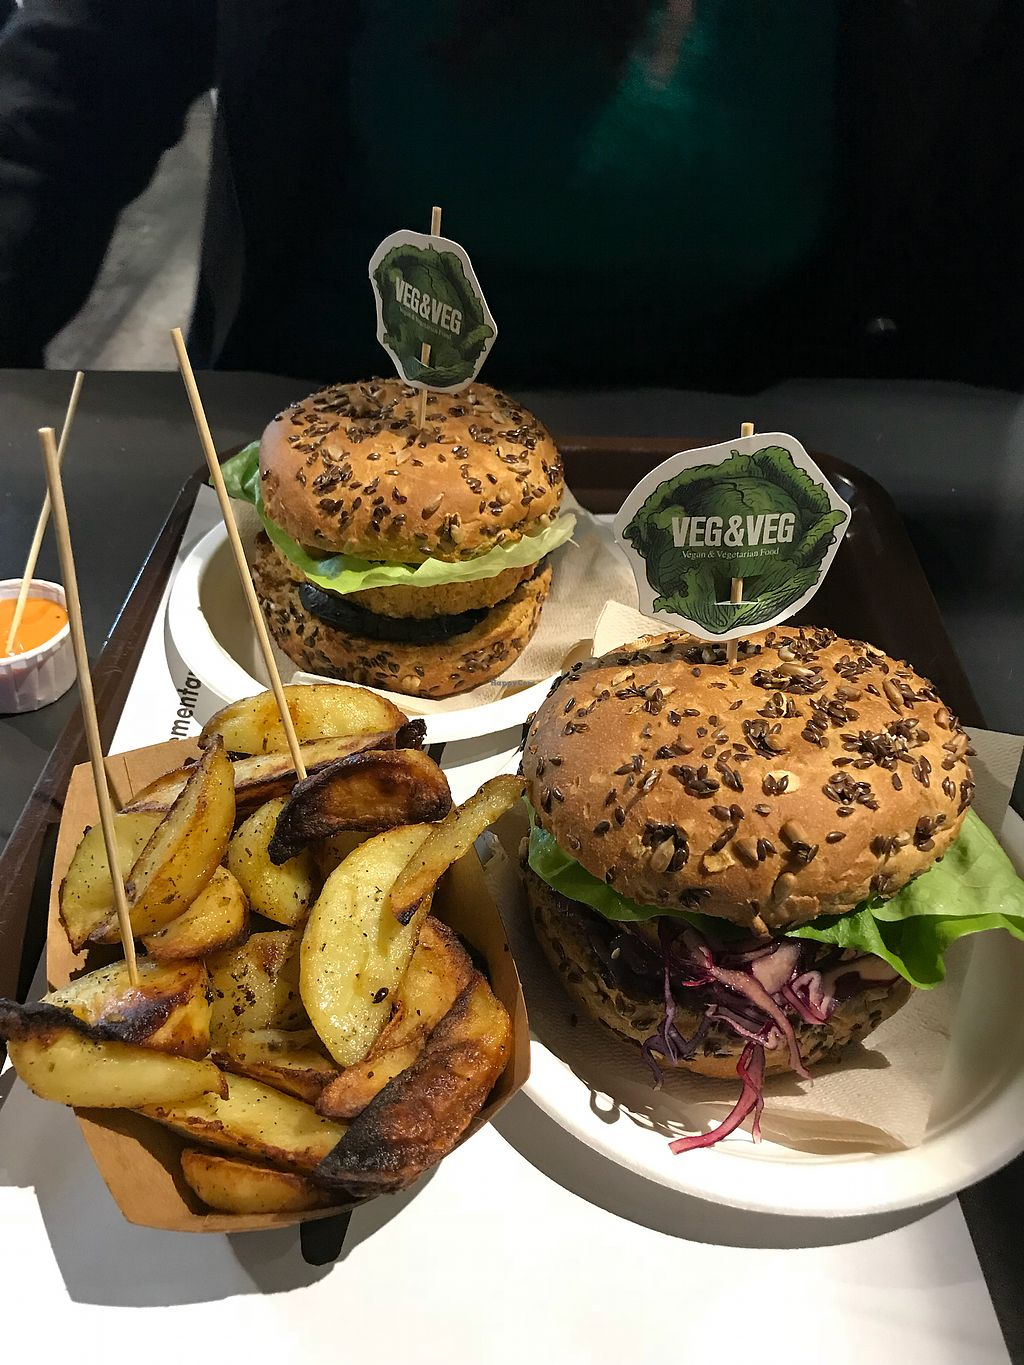 "Photo of Vegetariano & Vegano  by <a href=""/members/profile/TDHill"">TDHill</a> <br/>Best vegan burgers ever! <br/> February 26, 2018  - <a href='/contact/abuse/image/112977/363846'>Report</a>"